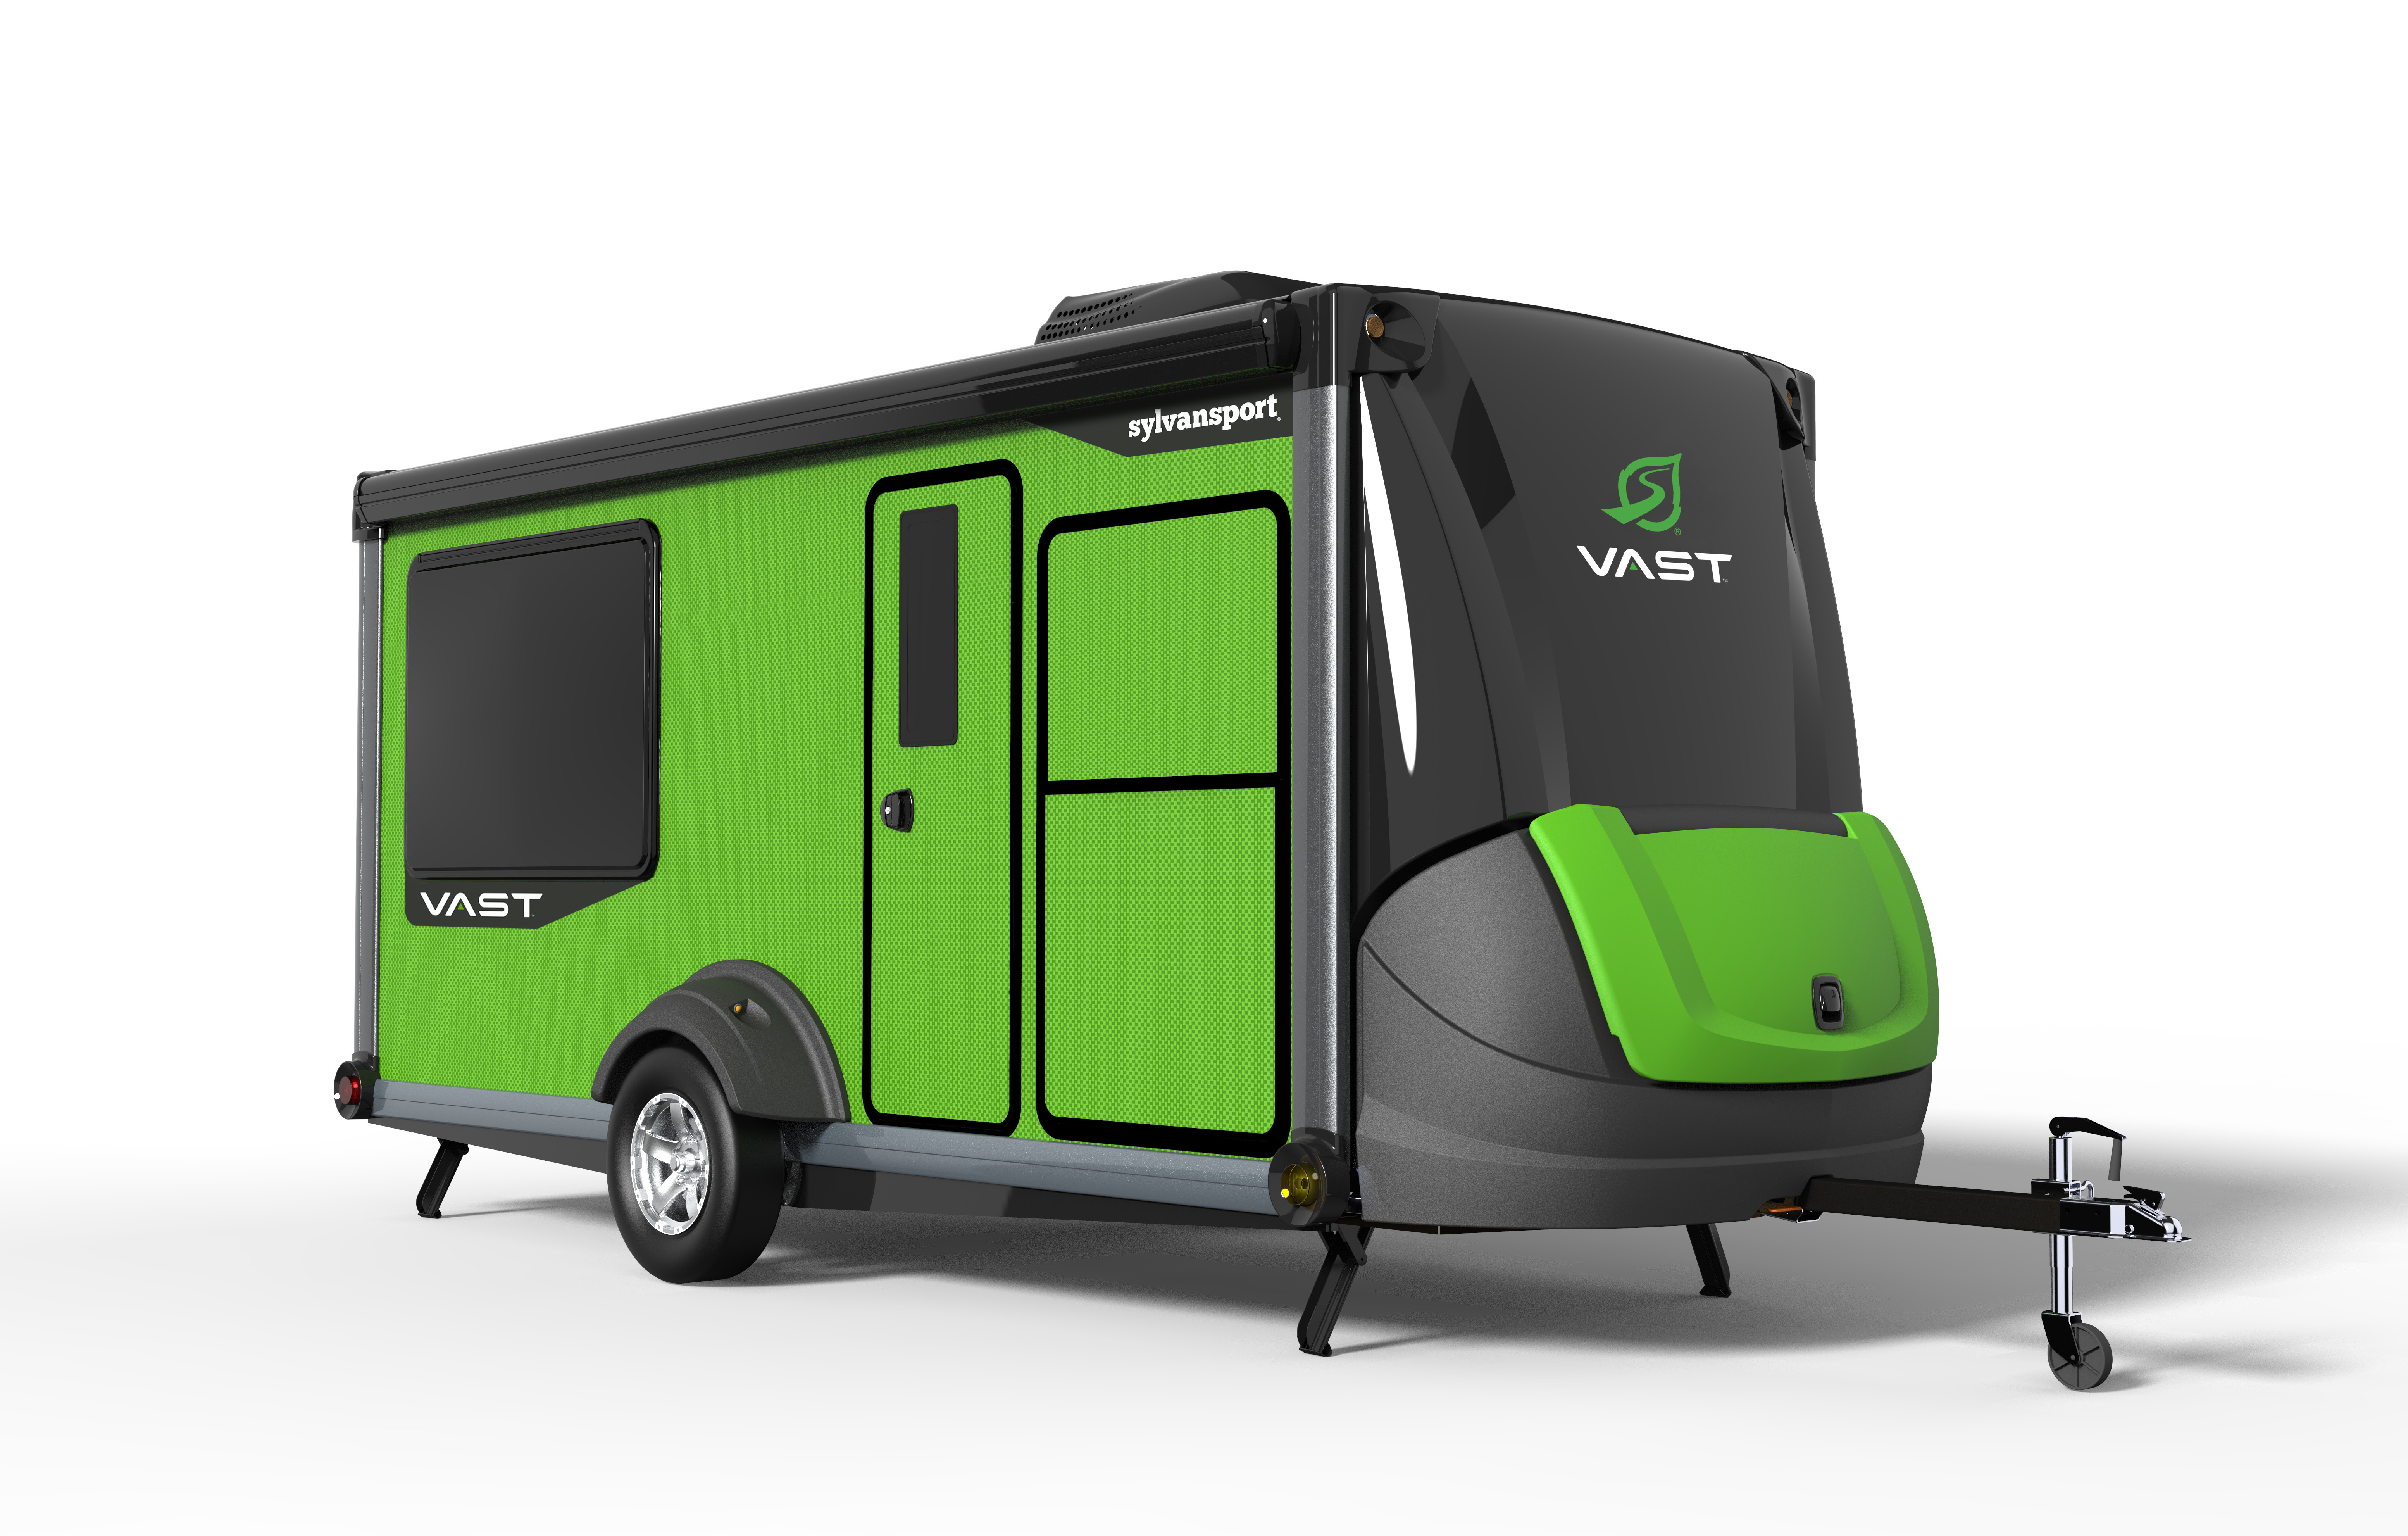 RVX trade show: RV Industry news and updates